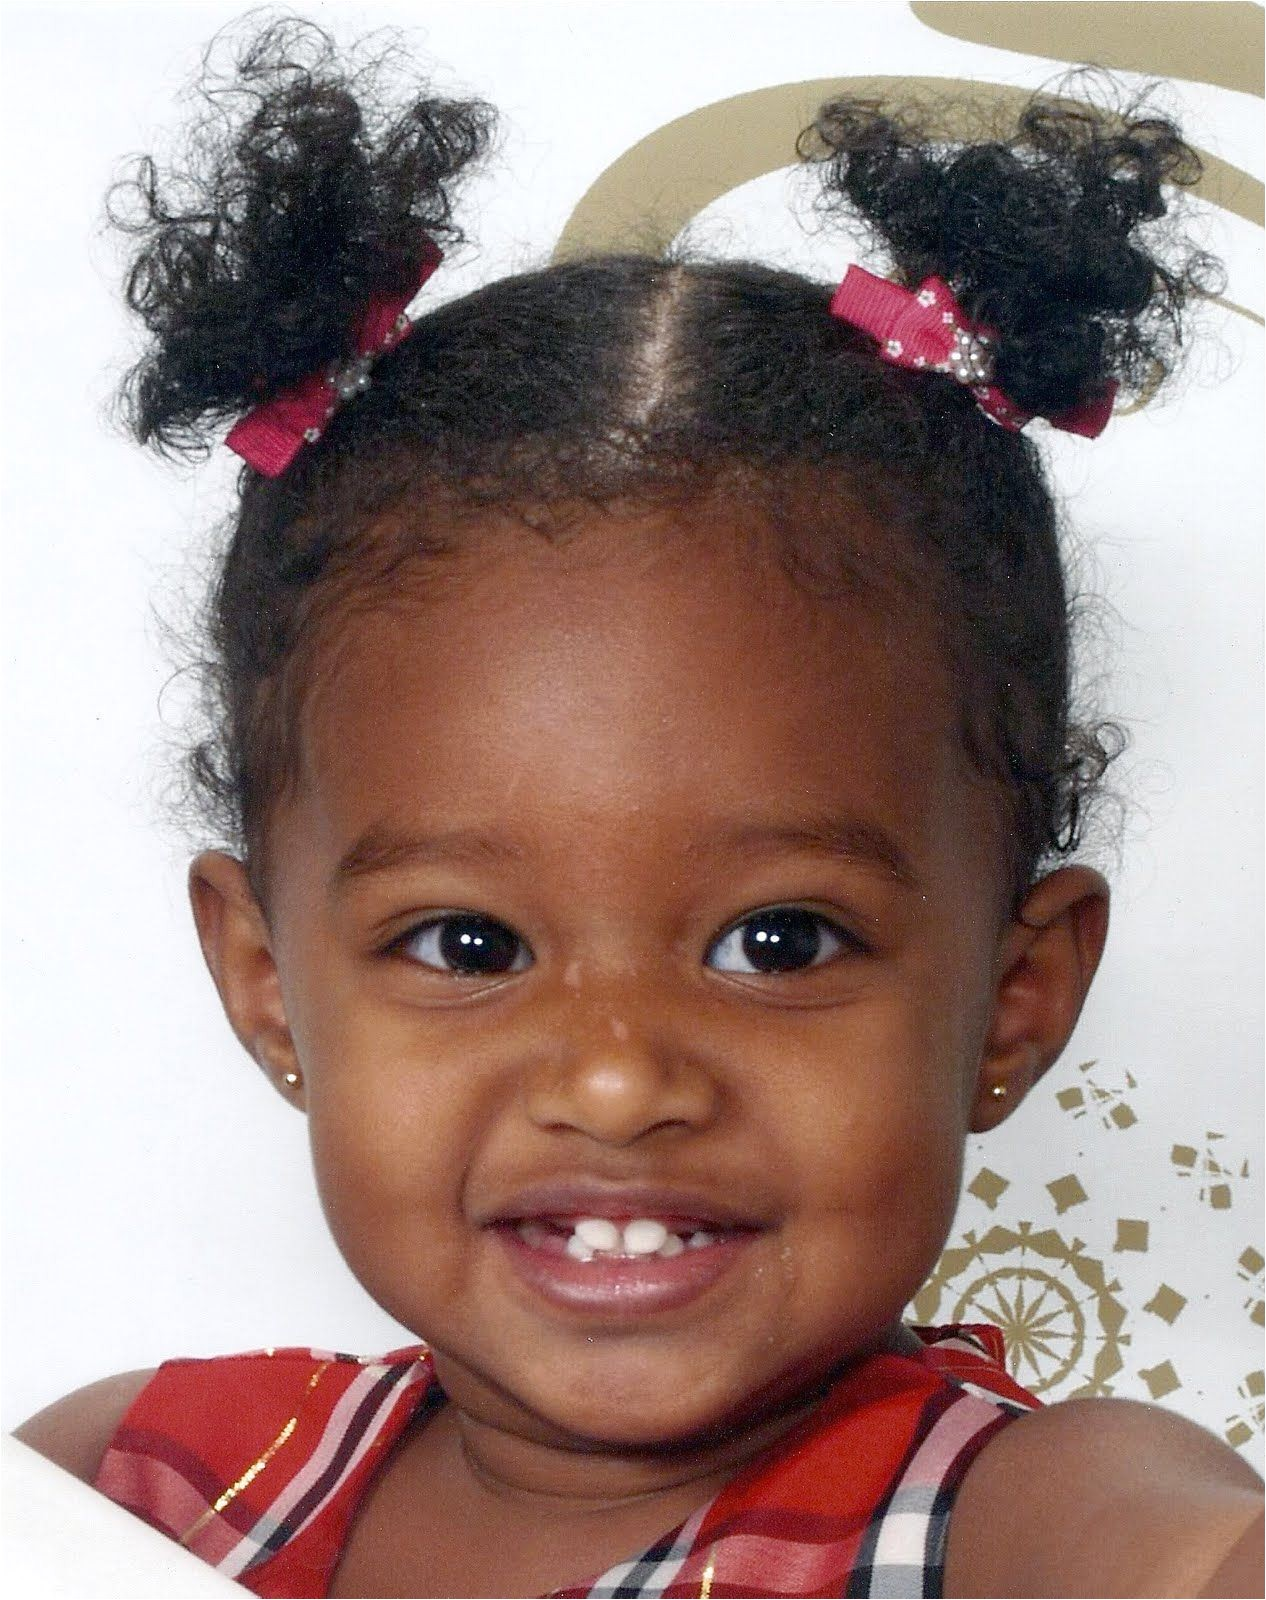 Hairstyles for 1 Year Old Black Baby Girl 1 Year Old Black Baby Girl Hairstyles All American Parents Magazine